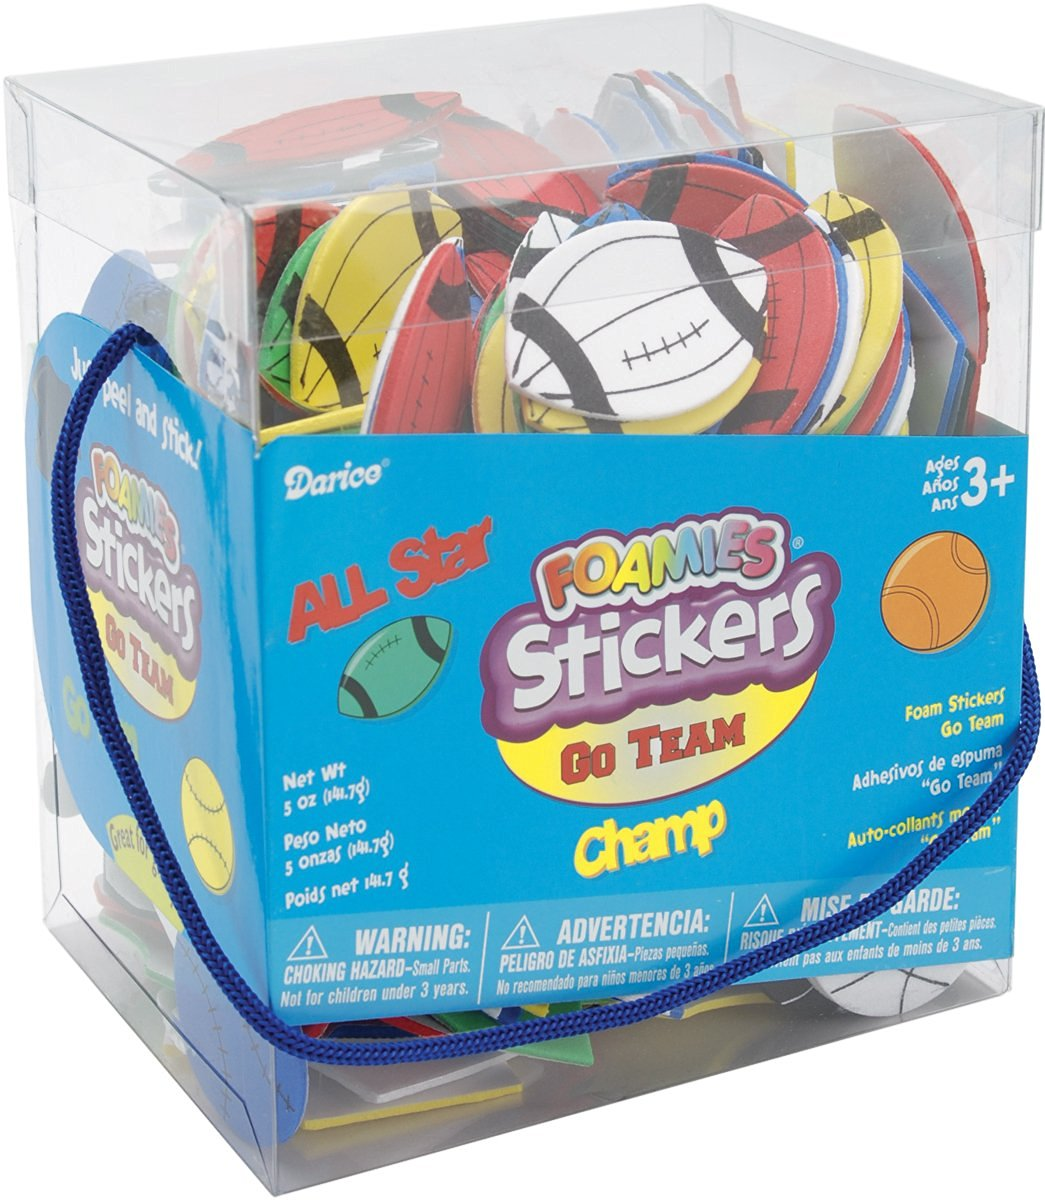 Darice 1040-73 Bucket of Foamies Stickers, Go Team, 5-Ounce